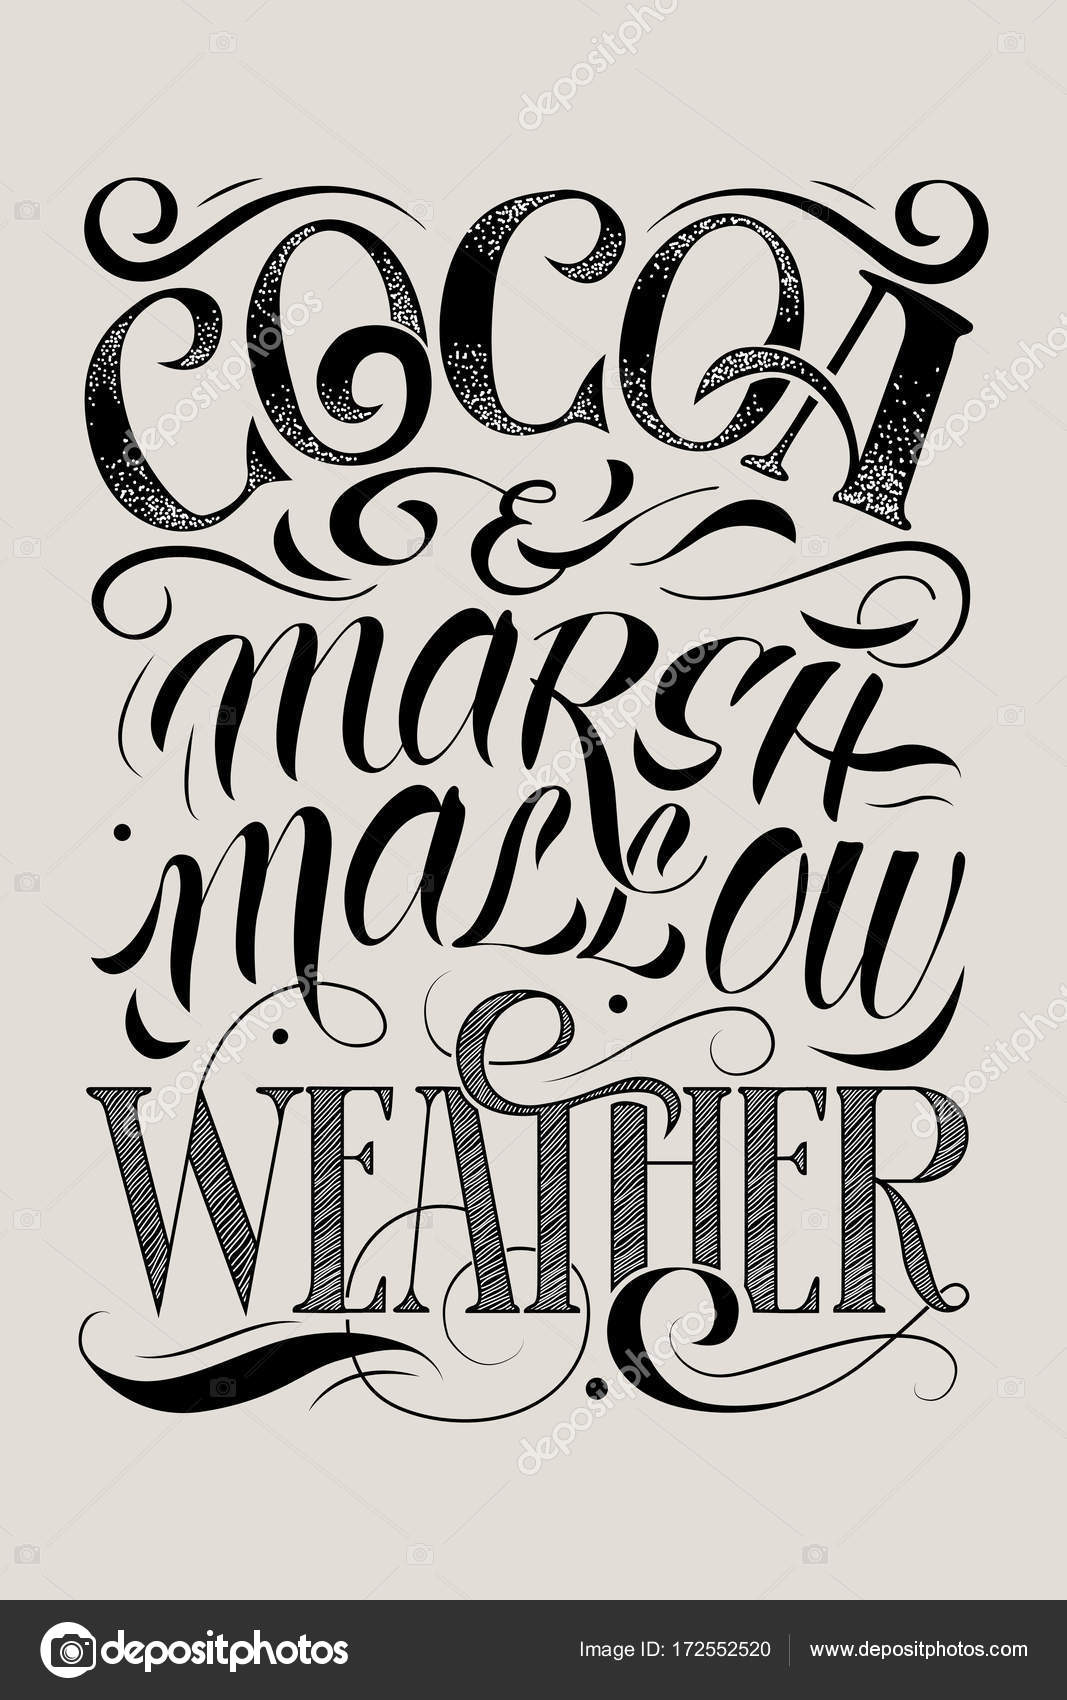 Vector Hand Drawing Lettering Phrase Cocoa And Marshmallow Weather